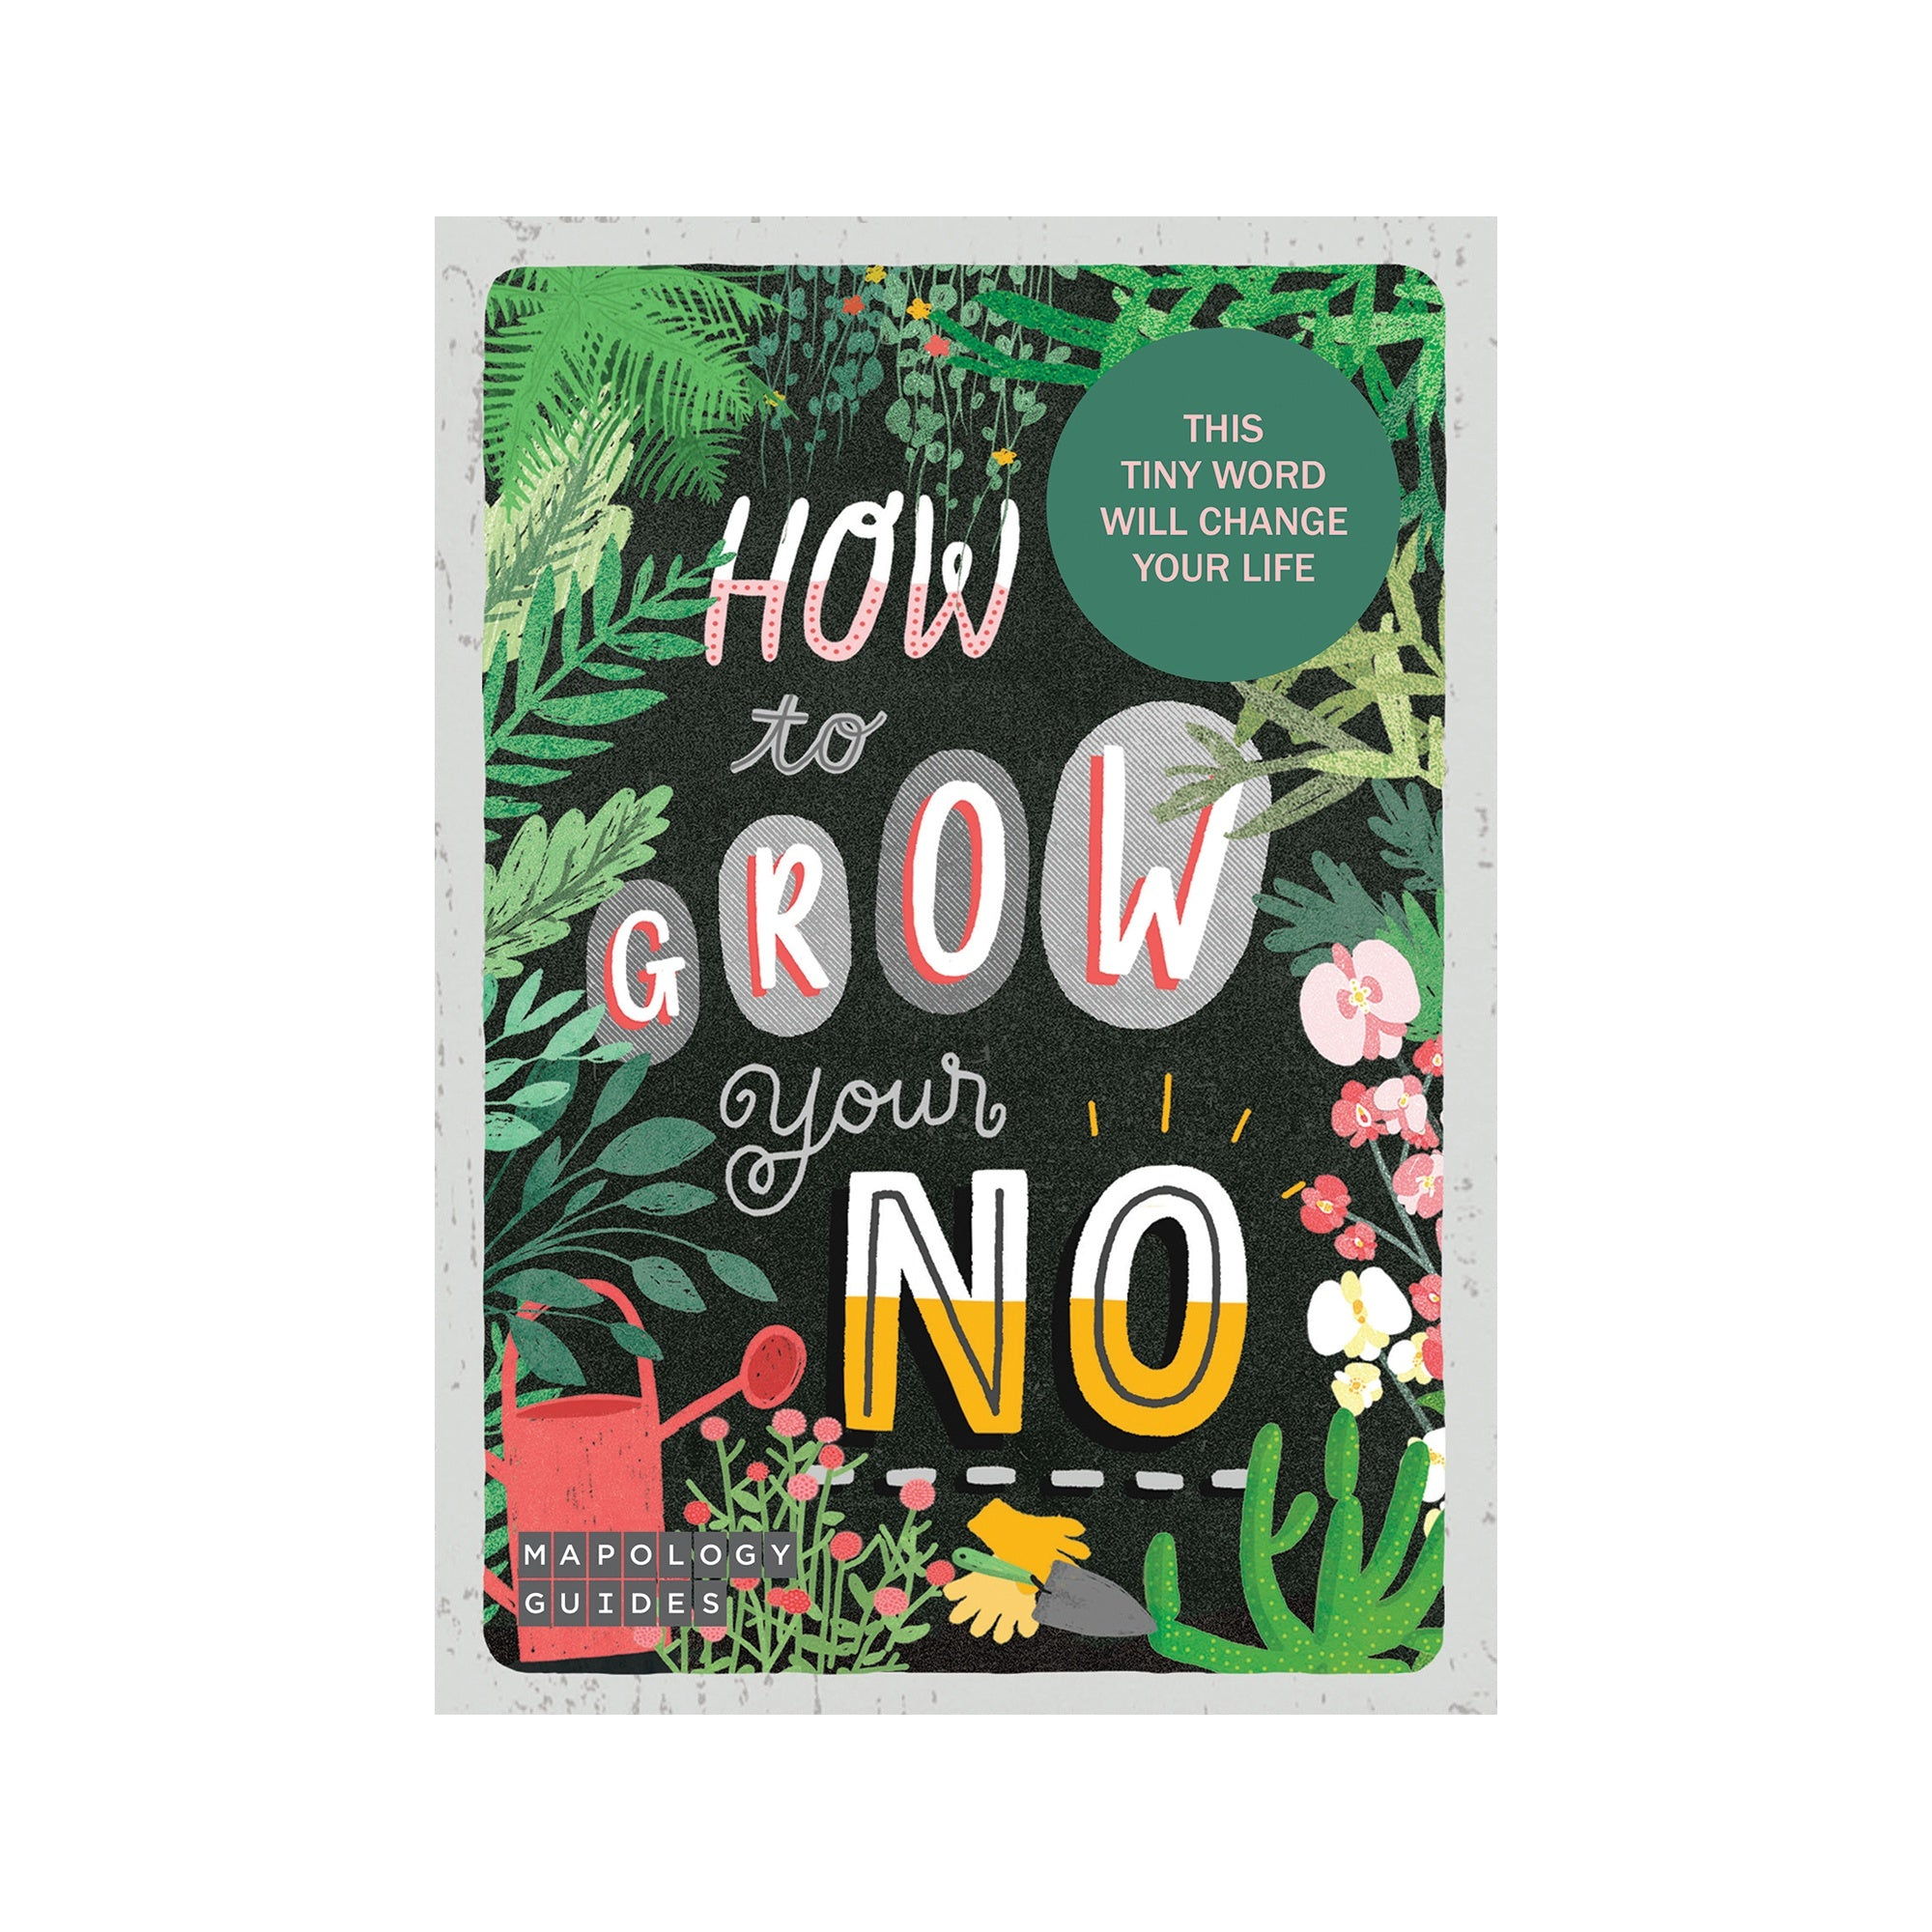 How To Grow Your No